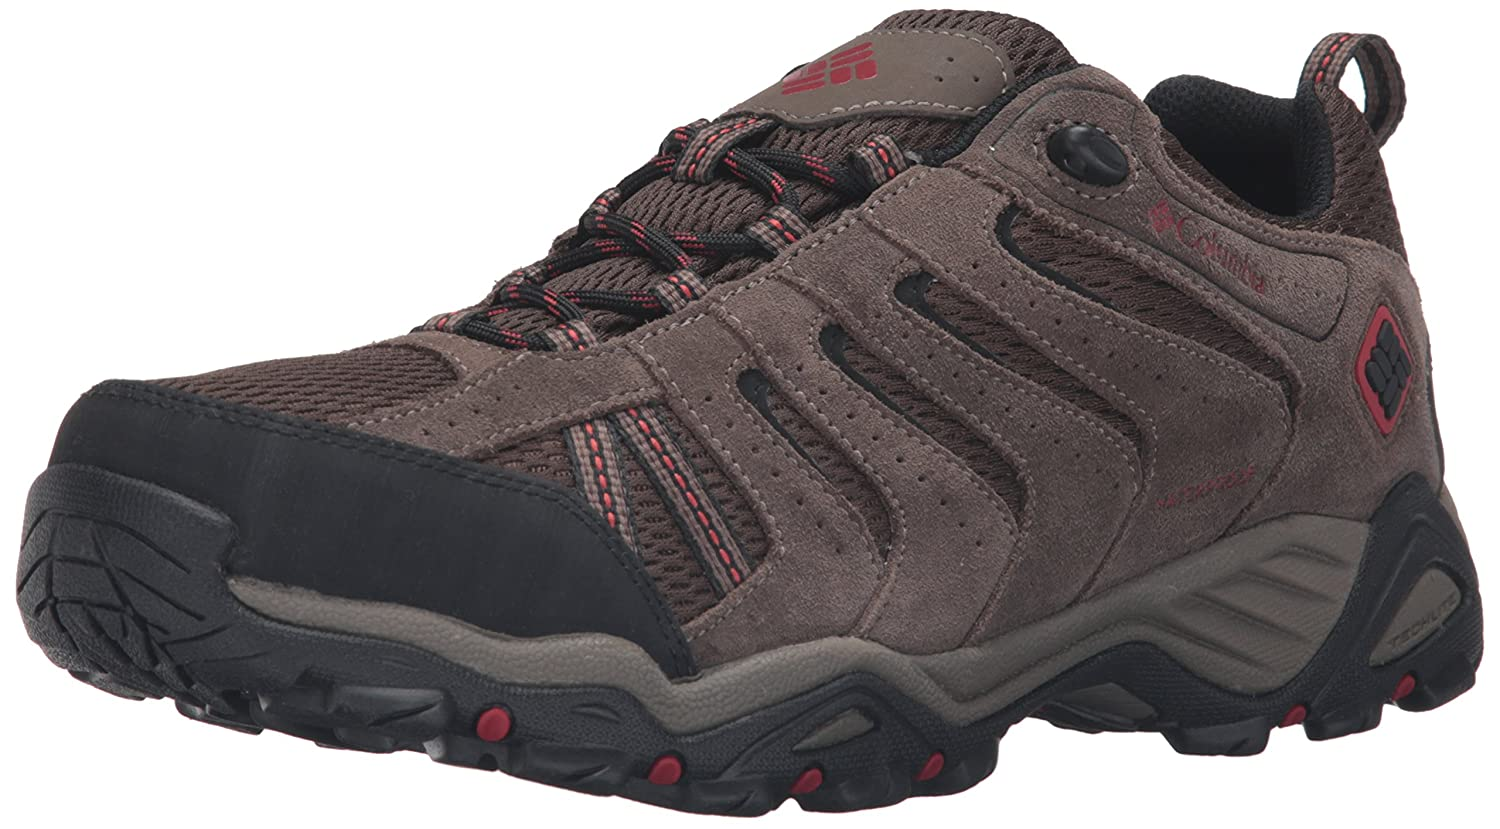 TALLA 43 EU. Columbia North Plains II Waterproof, Zapatillas de Senderismo para Hombre